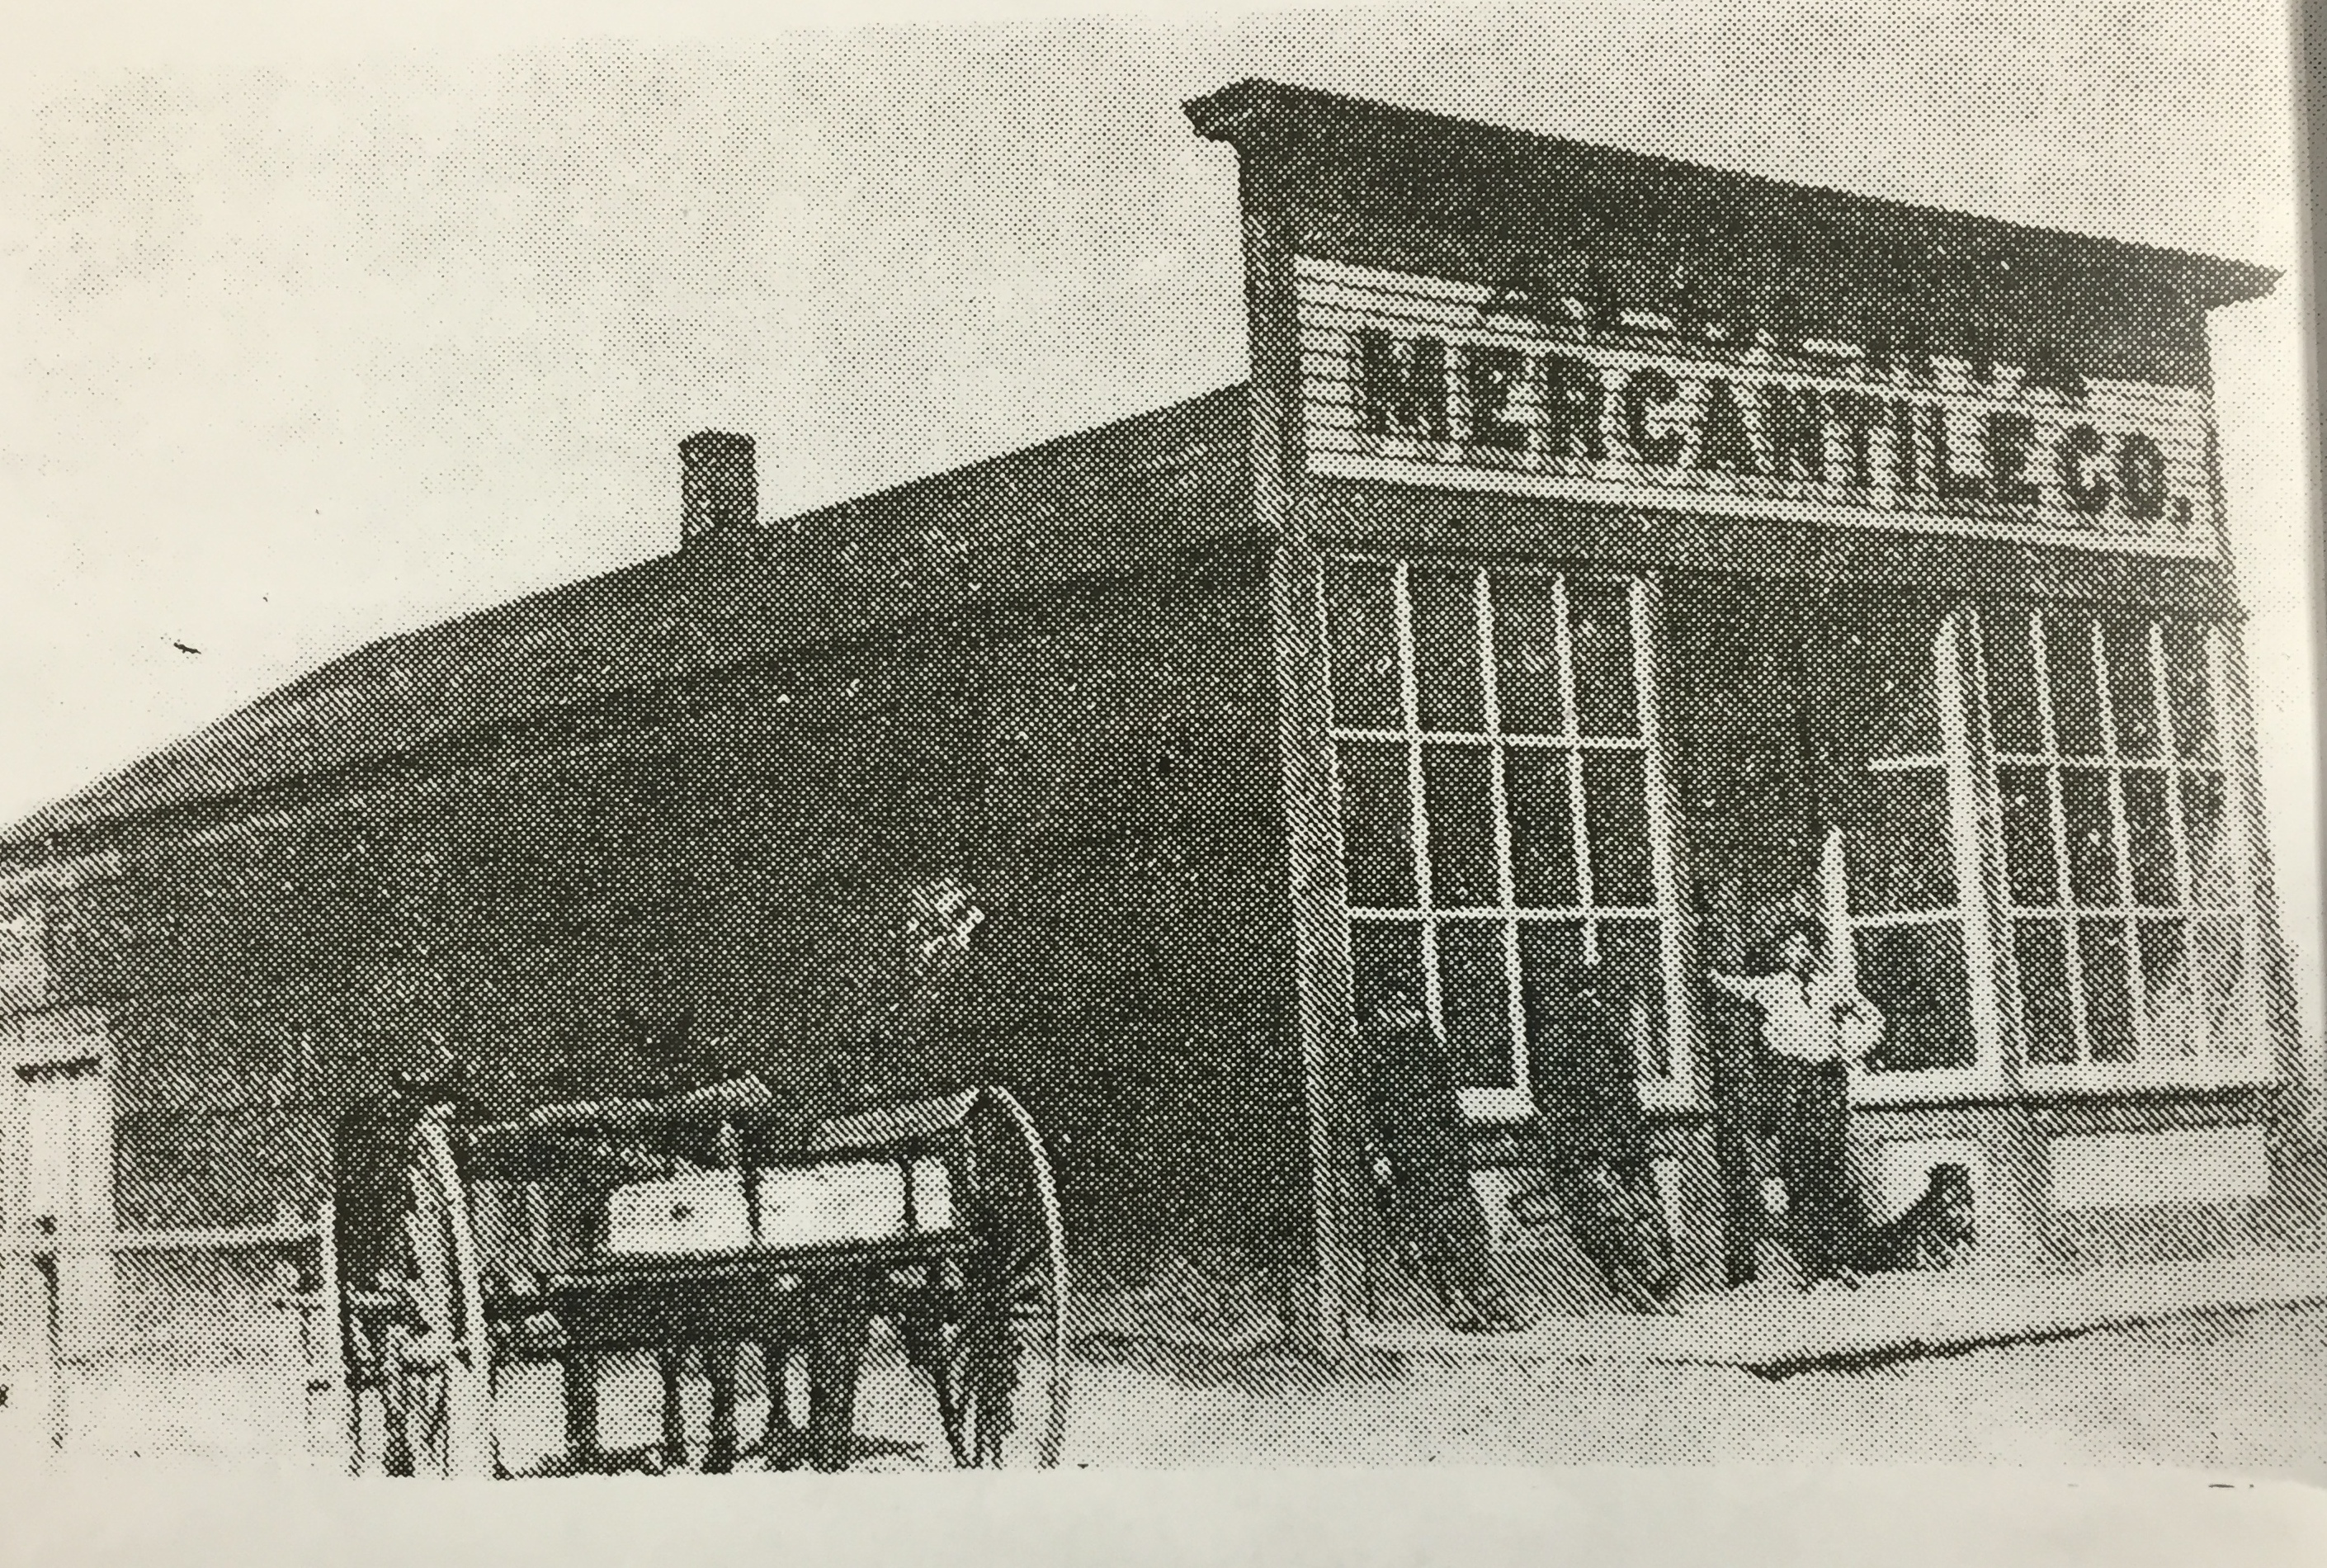 Historic Alberta (Richfield), Idaho Mercantile